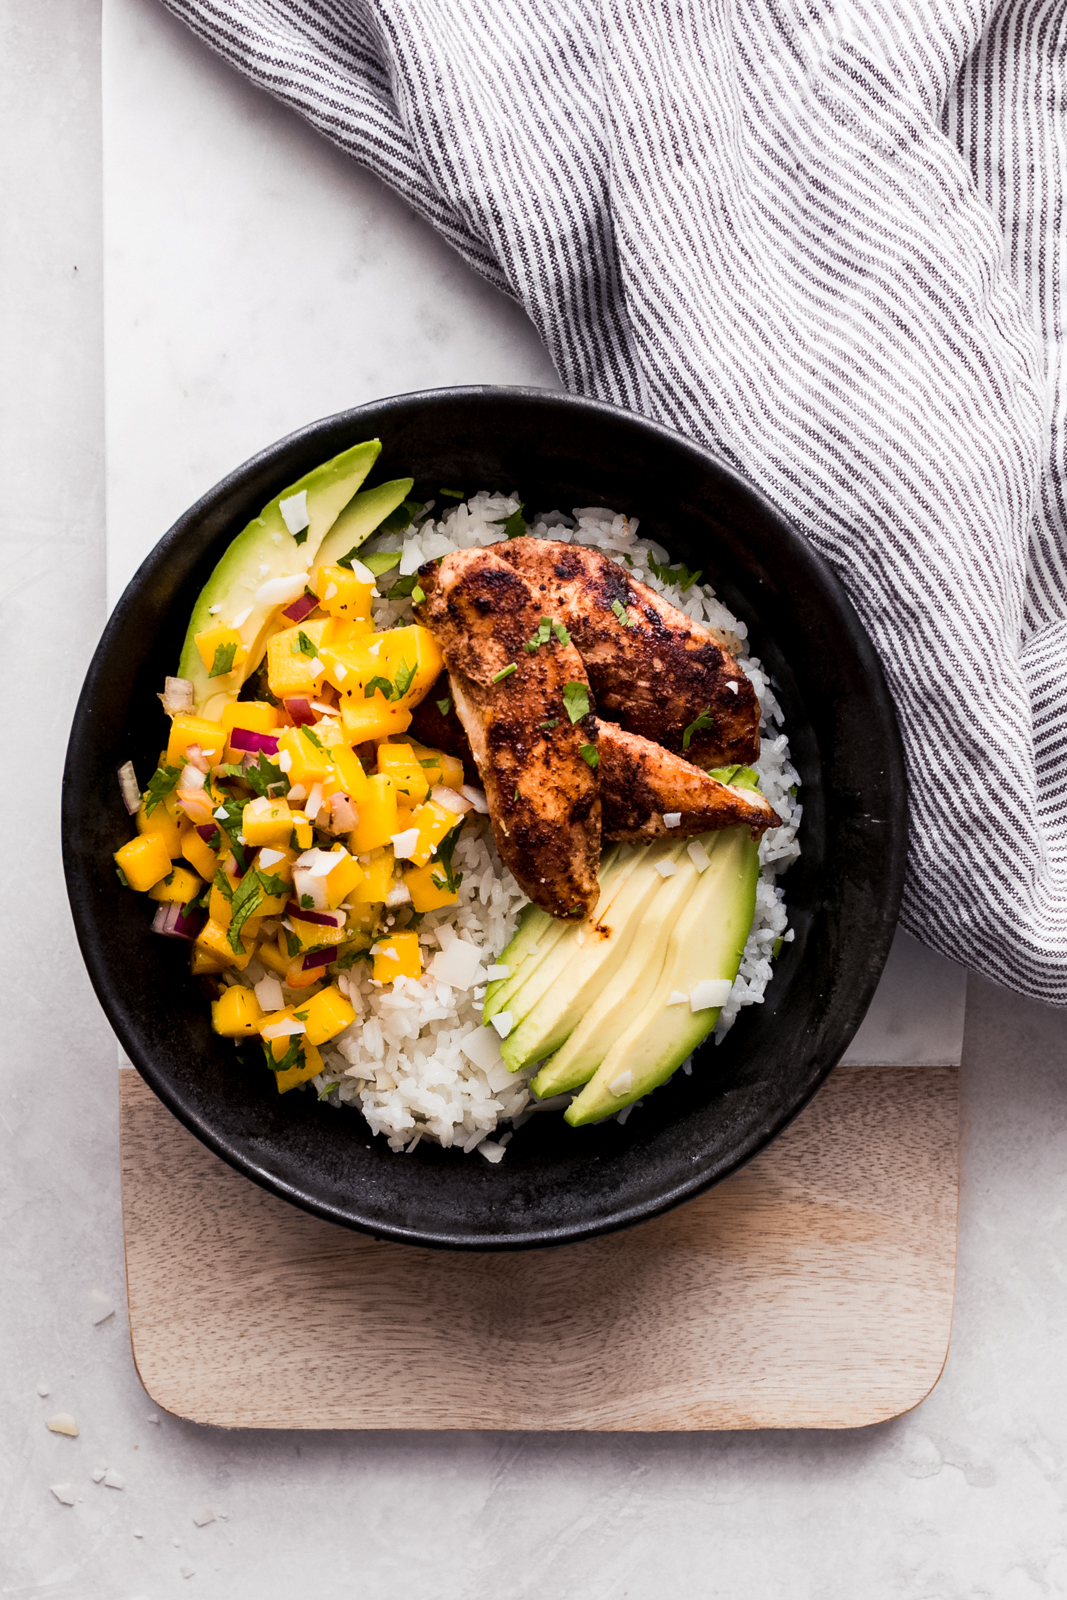 bowl of jerk chicken, rice , topped with mango salsa and avocado slices on marble surface